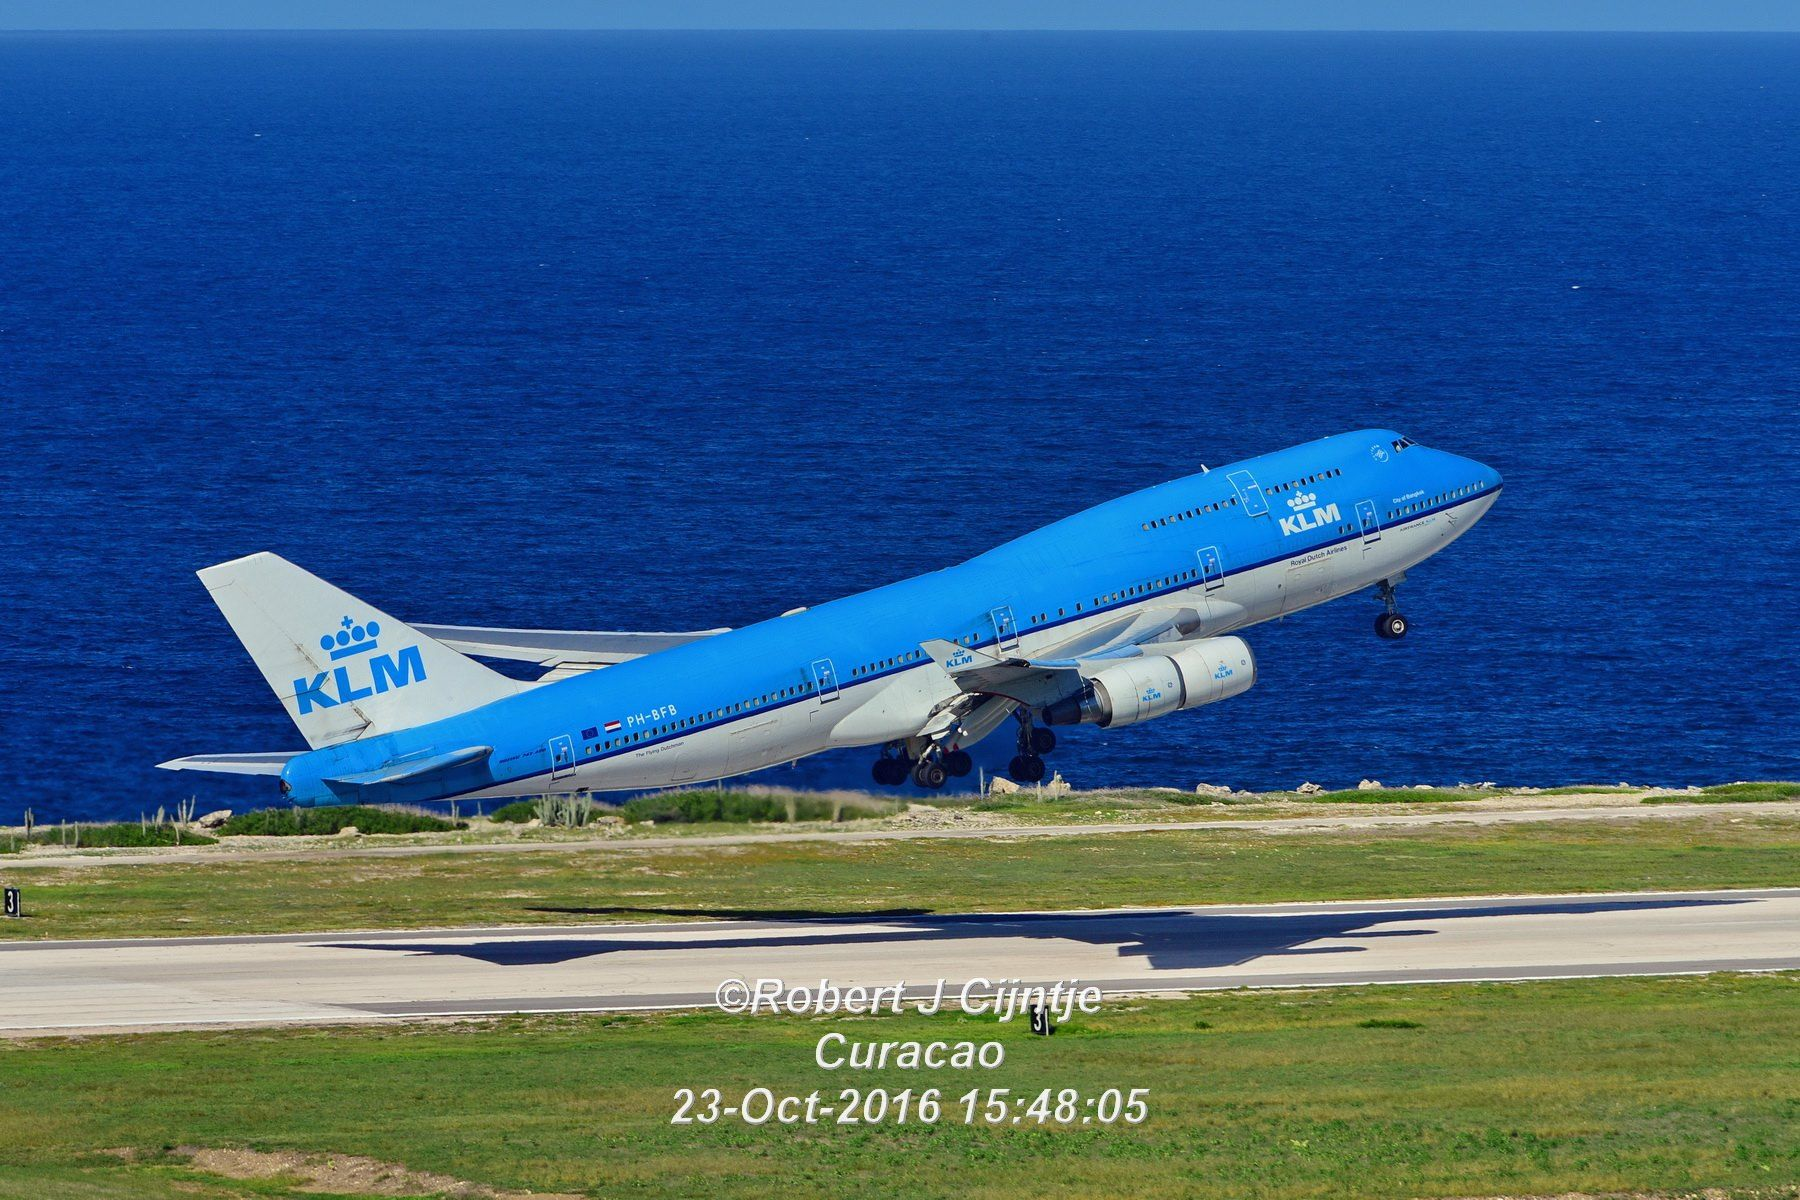 Myklm Lovely Old Lady 747 Klm Royal Dutch Airlines Klm Airlines Civil Aviation